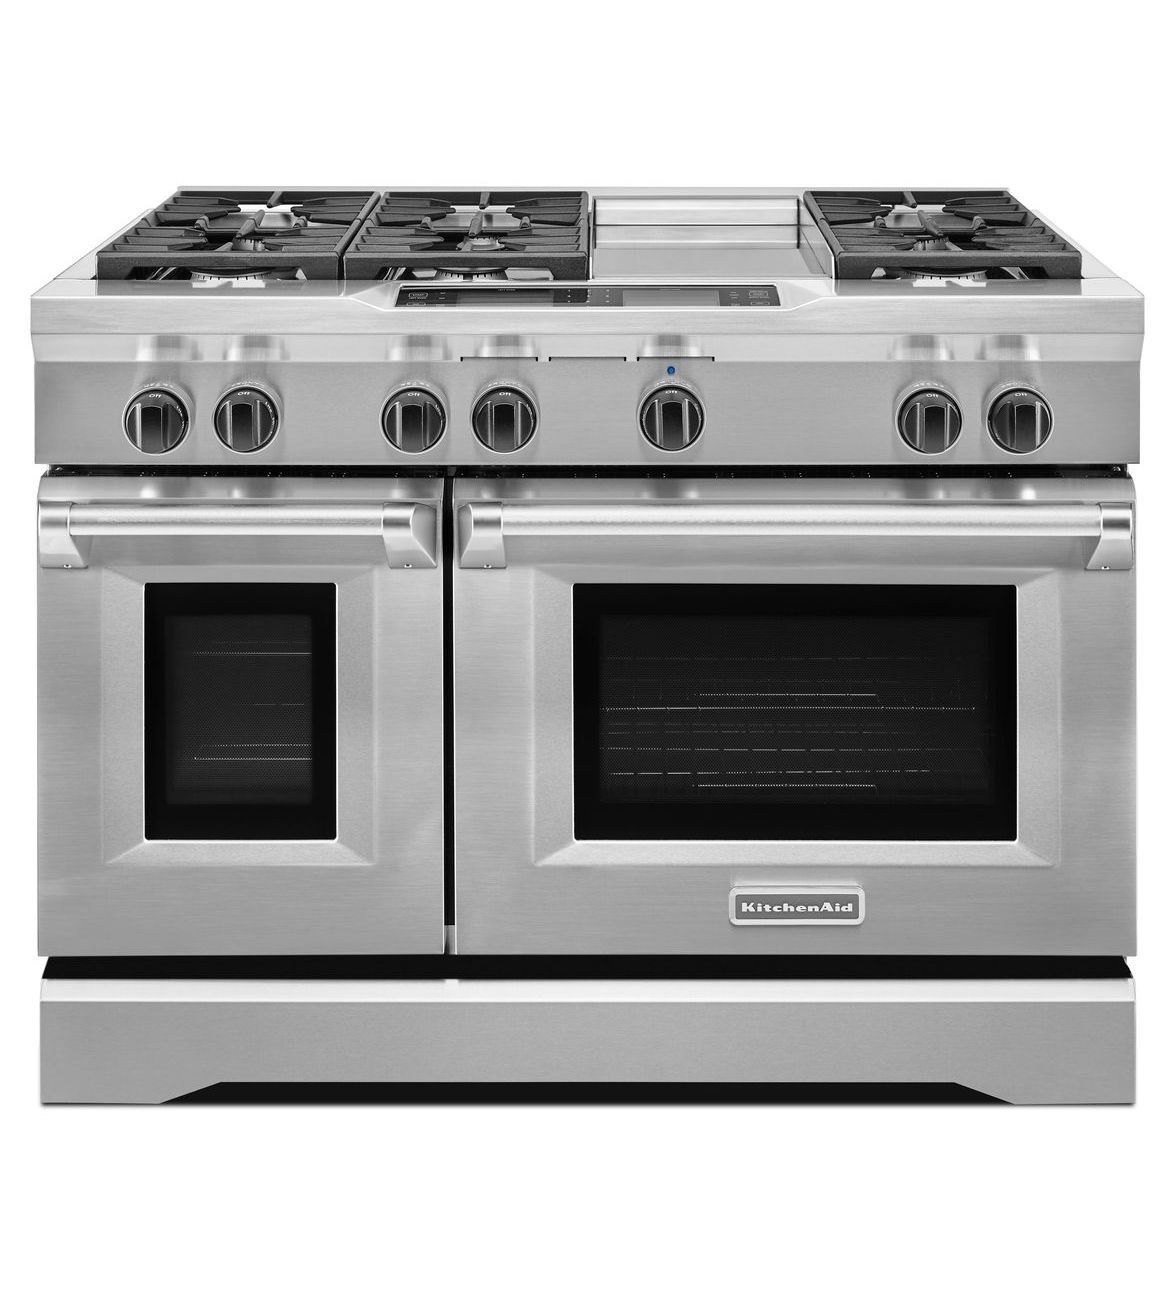 Side By Side Double Ovens 3 Kitchenaid Dual Fuel Range Major